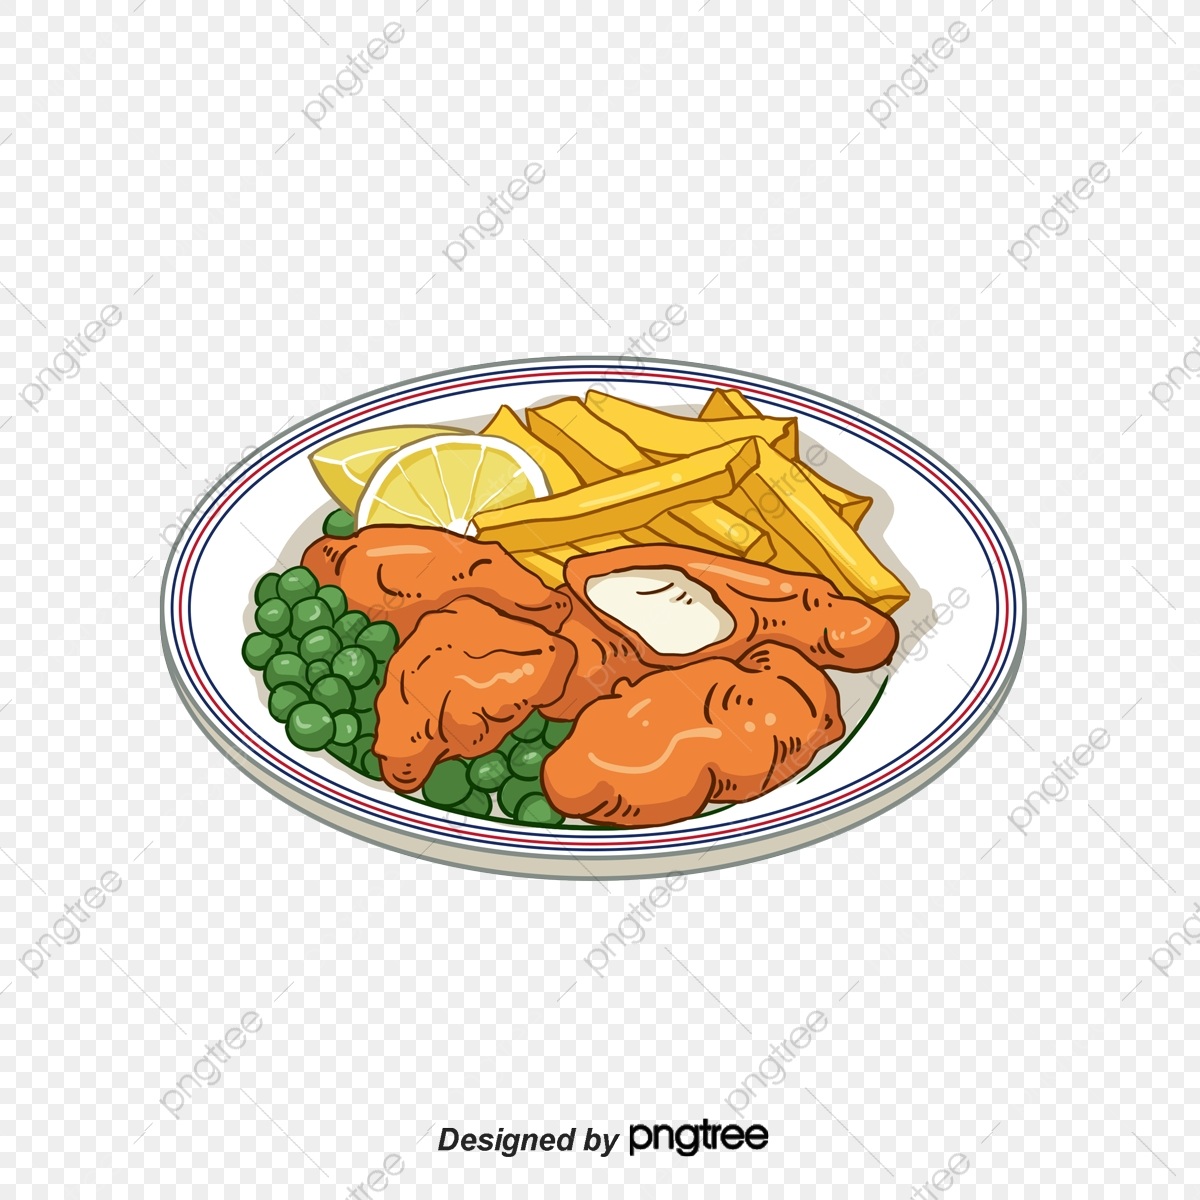 Hand Painted Fish And Chips, Cartoon, Hand Painted, Lemon PNG.